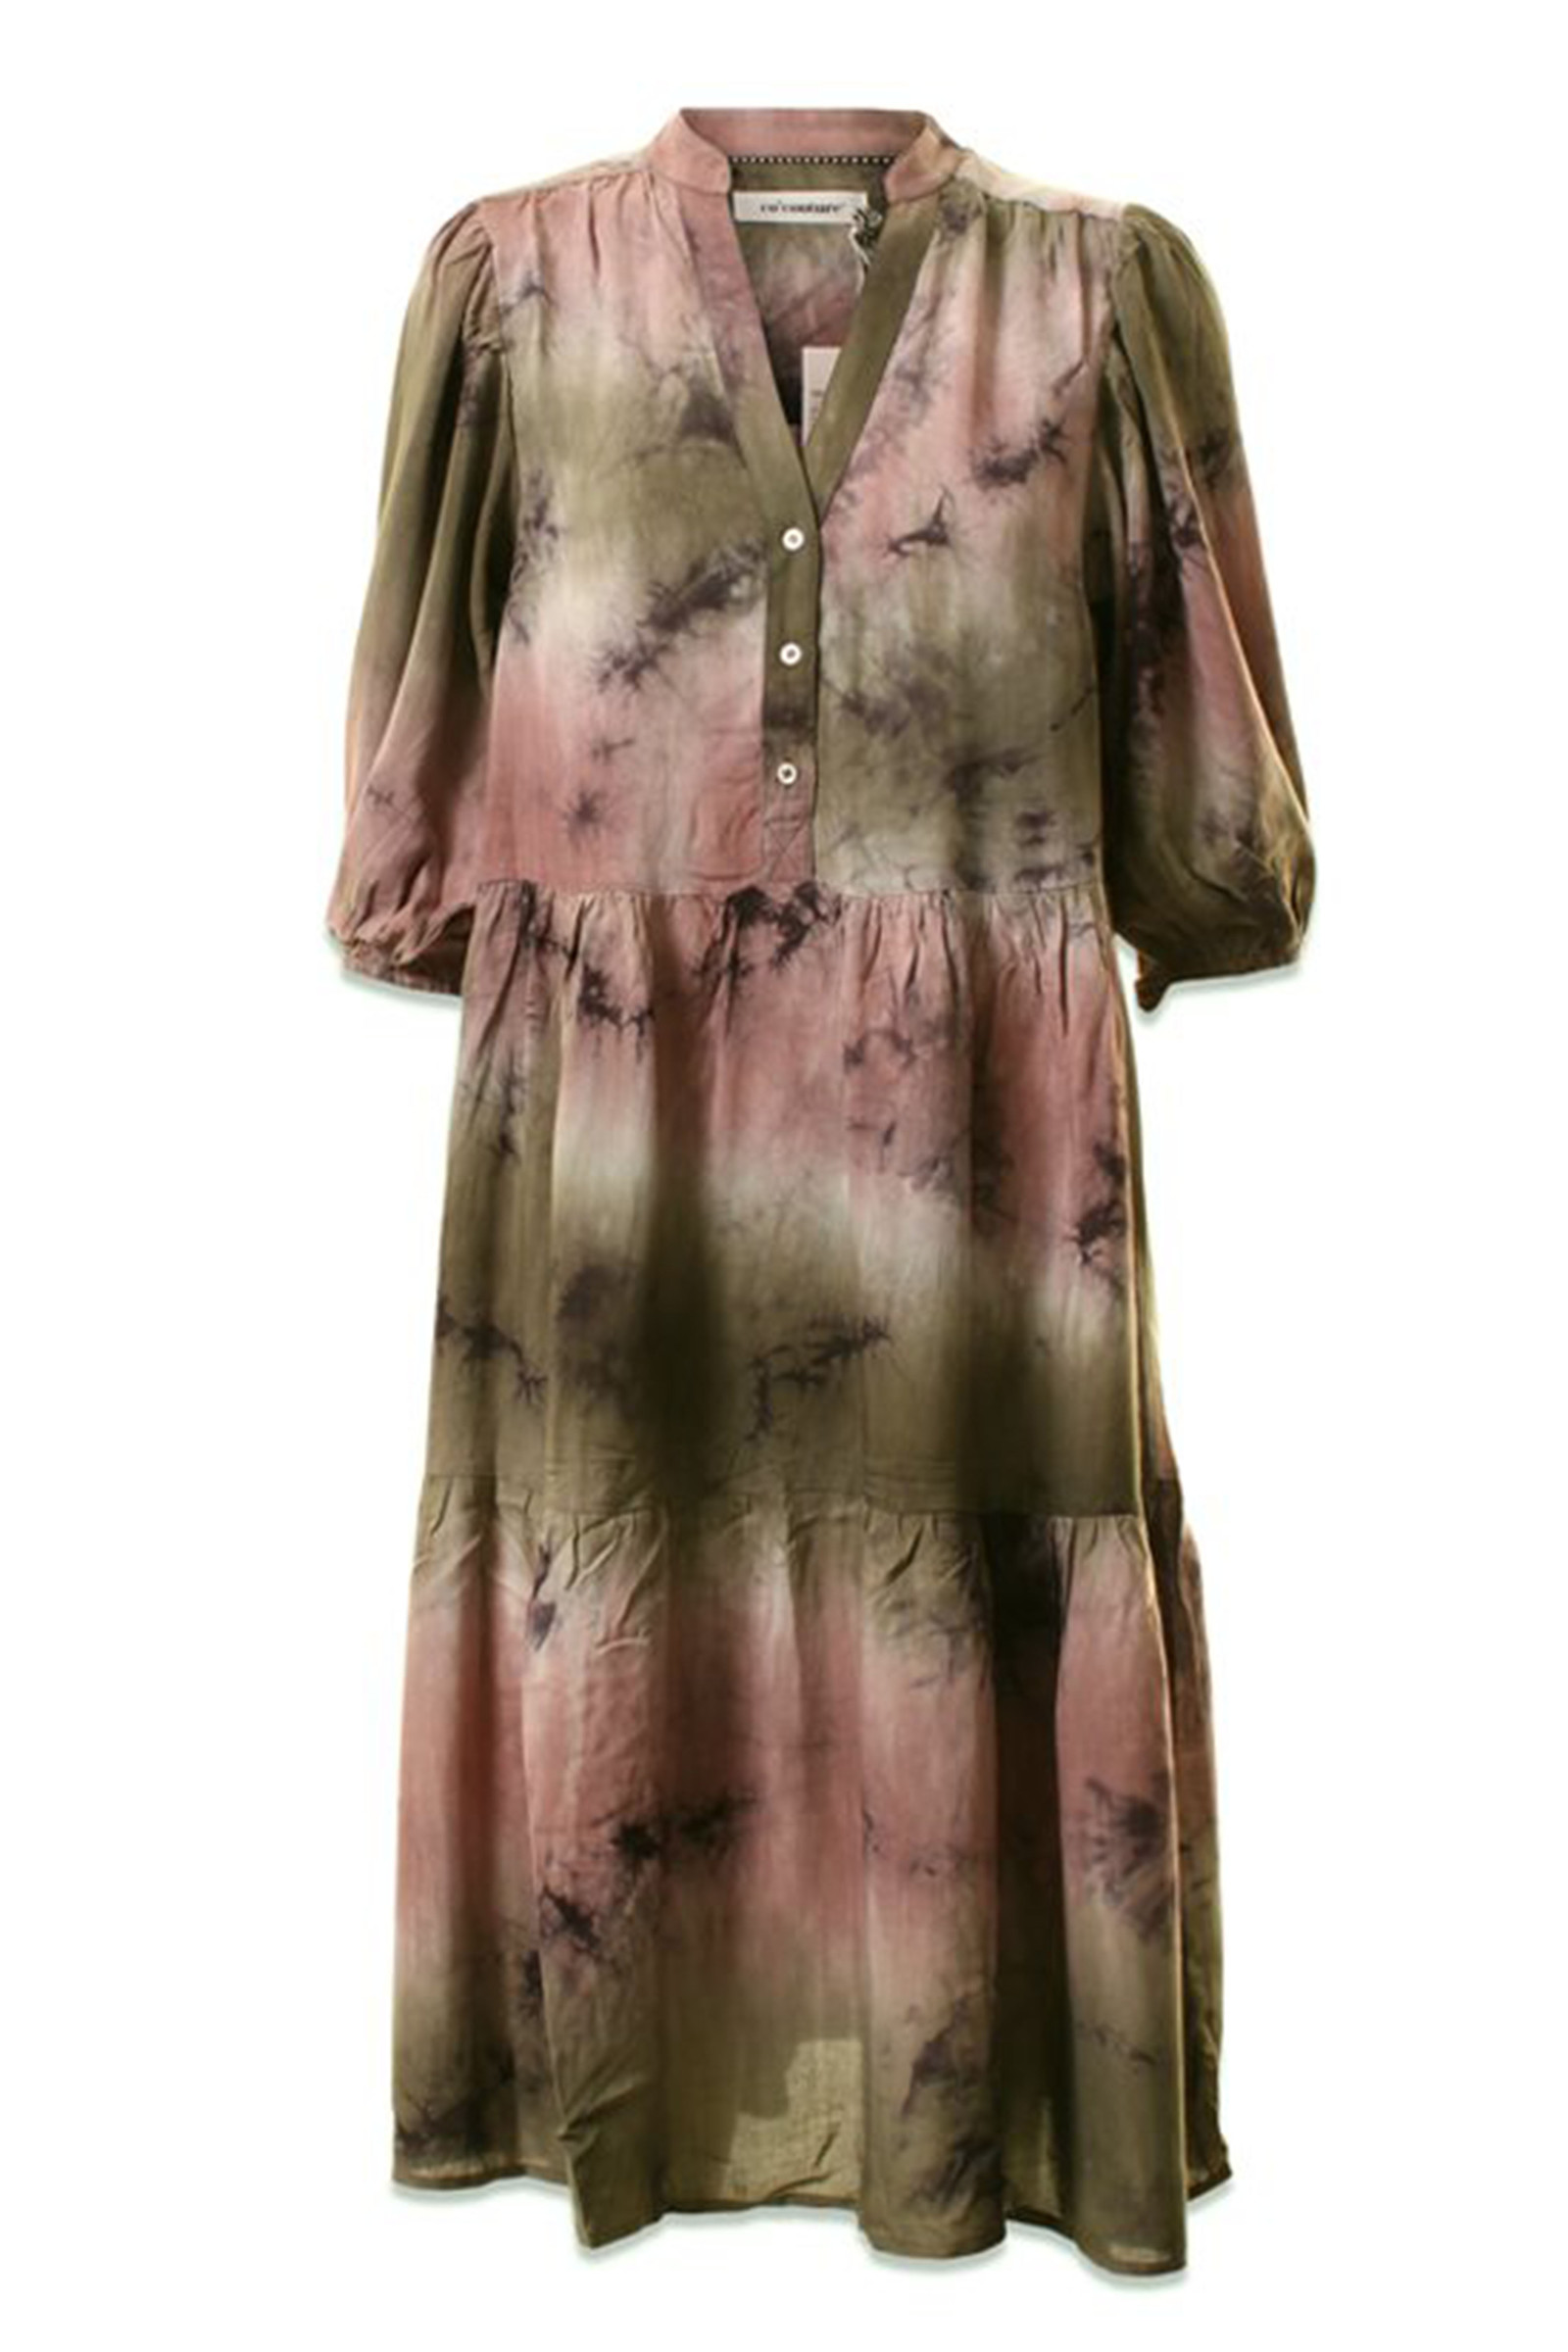 CO'COUTURE CREAM TIE DYE 96169 ARMY